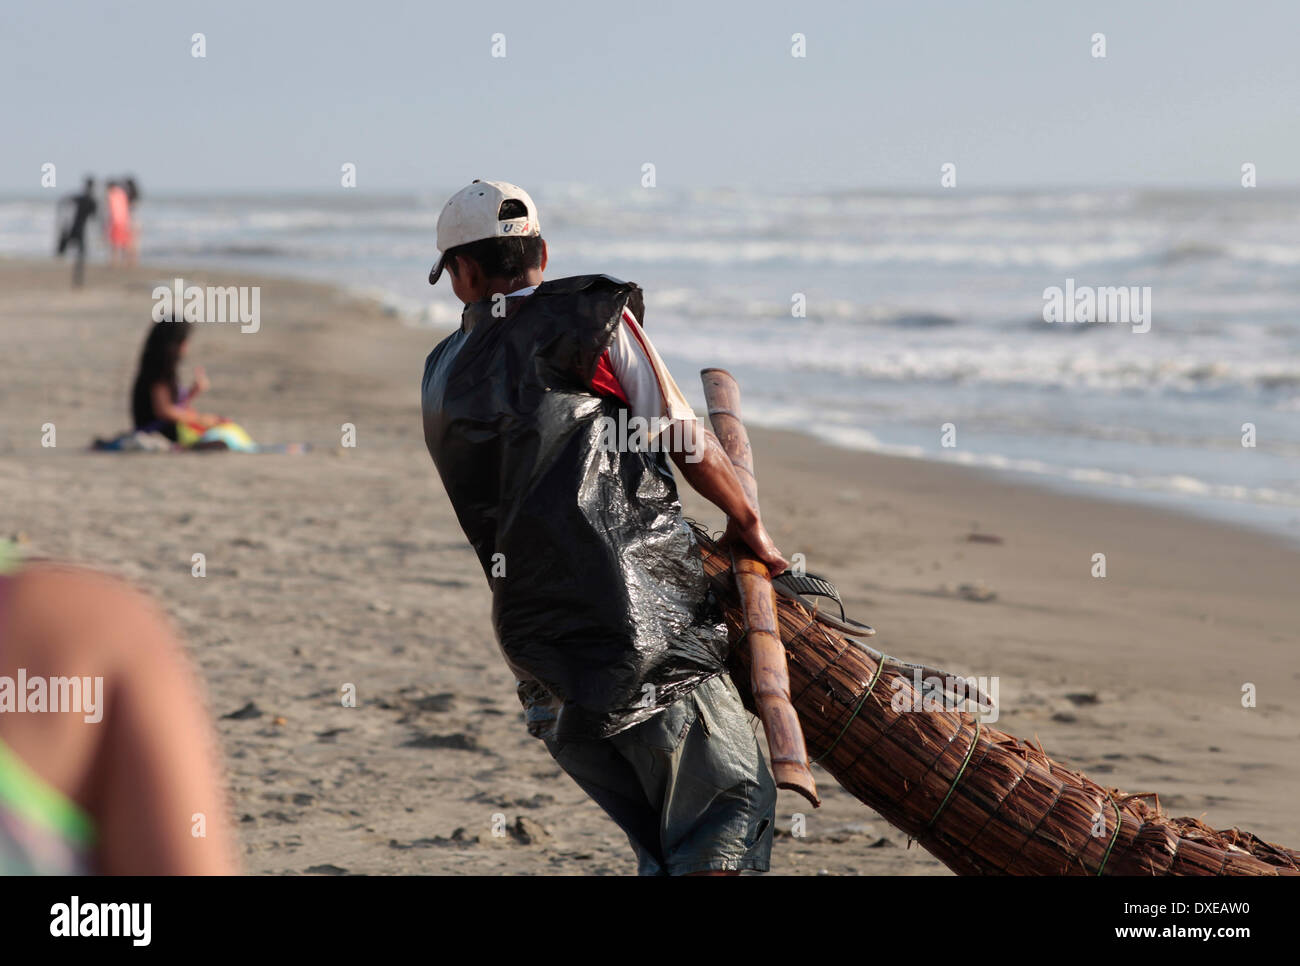 PIMENTEL, PERU - MARCH 22: Mario a fisherman in 'Totora Horses' is seen arriving at the beach  of Pimentel after a day of fishing in Pacific Ocean, about 800 kilometers north of Lima in Pimentel, Peru, Saturday, March 22, 2014. The 'Totora Horses' are Built with cattail rushes like the ethnic group of the Inca empire Mochica already made five centuries ago. The canoes are used daily to go deep into the ocean, to return after working for Between 8 and 12 hours with 50 kg of fish trapped with nets. Today fishing tends to decrease and thus the income of fisherfolk. Photo by Elkin Cabarcas - Stock Image